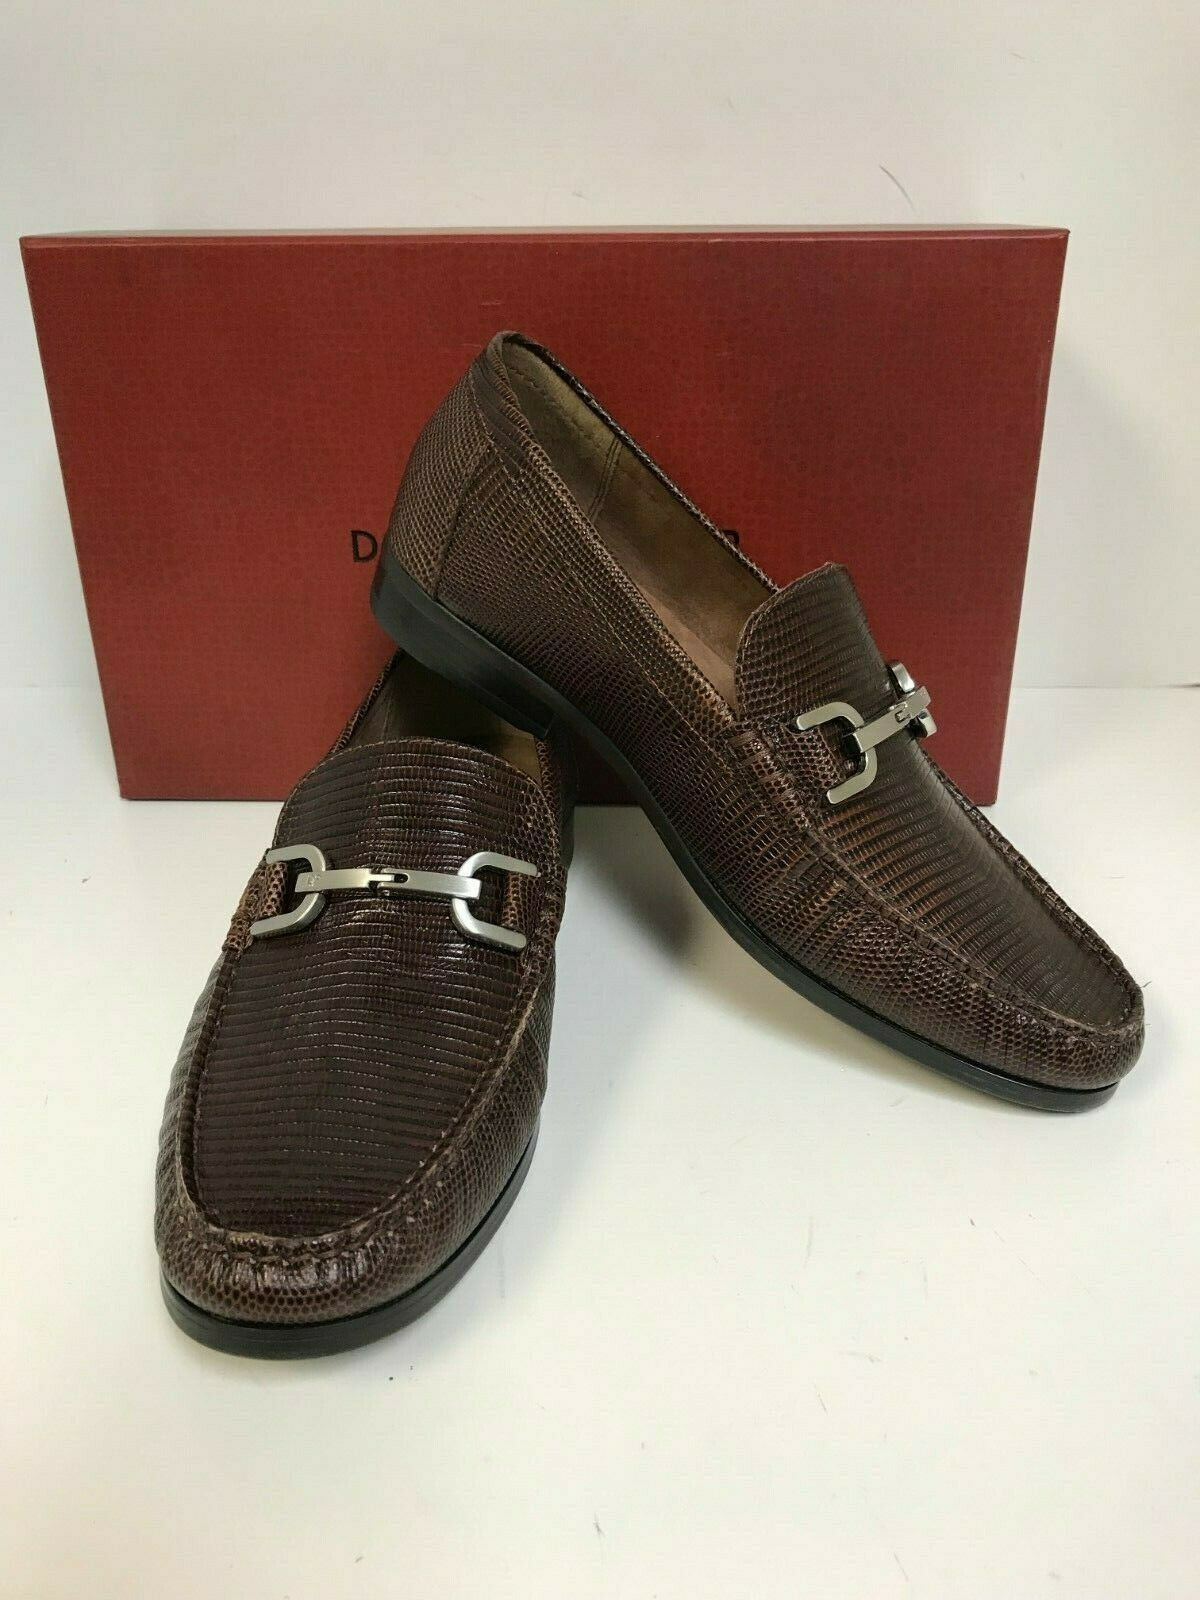 Donald Pliner Men's Niles-82 Brown Lizard Print Loafers with Silver Bit